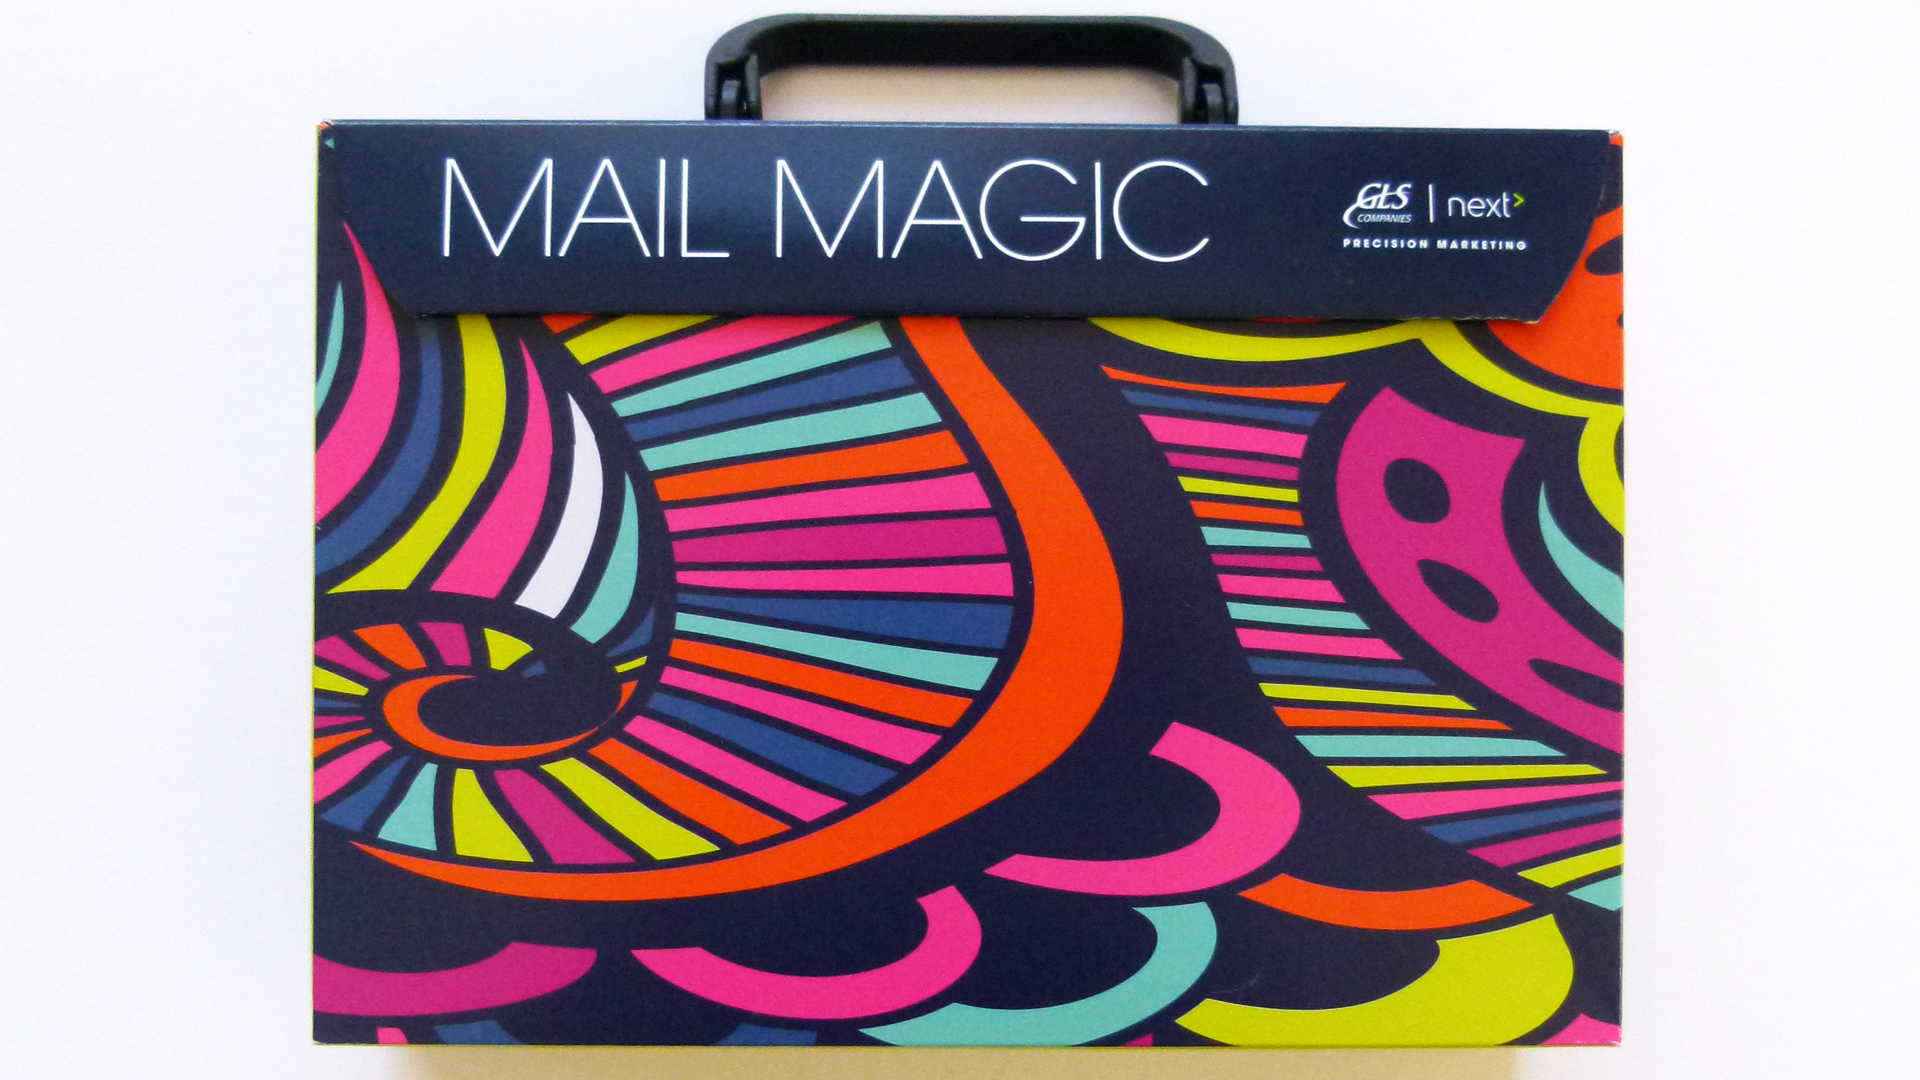 GLS/Next Precision Marketing Mail Magic Box